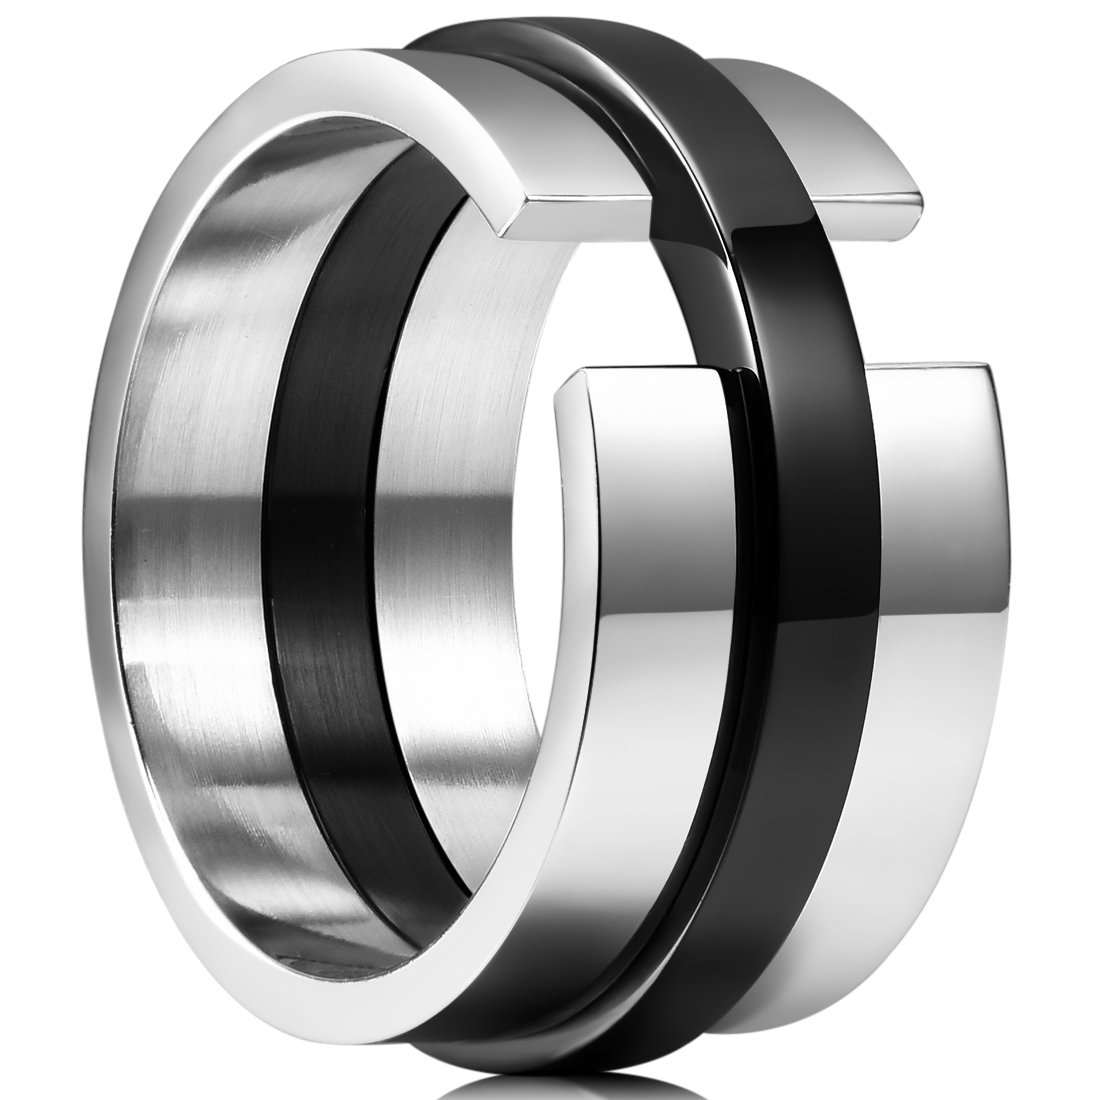 King Will TIME 11mm Black and White Mens Stainless Steel Wedding Band Ring High polished 8.5